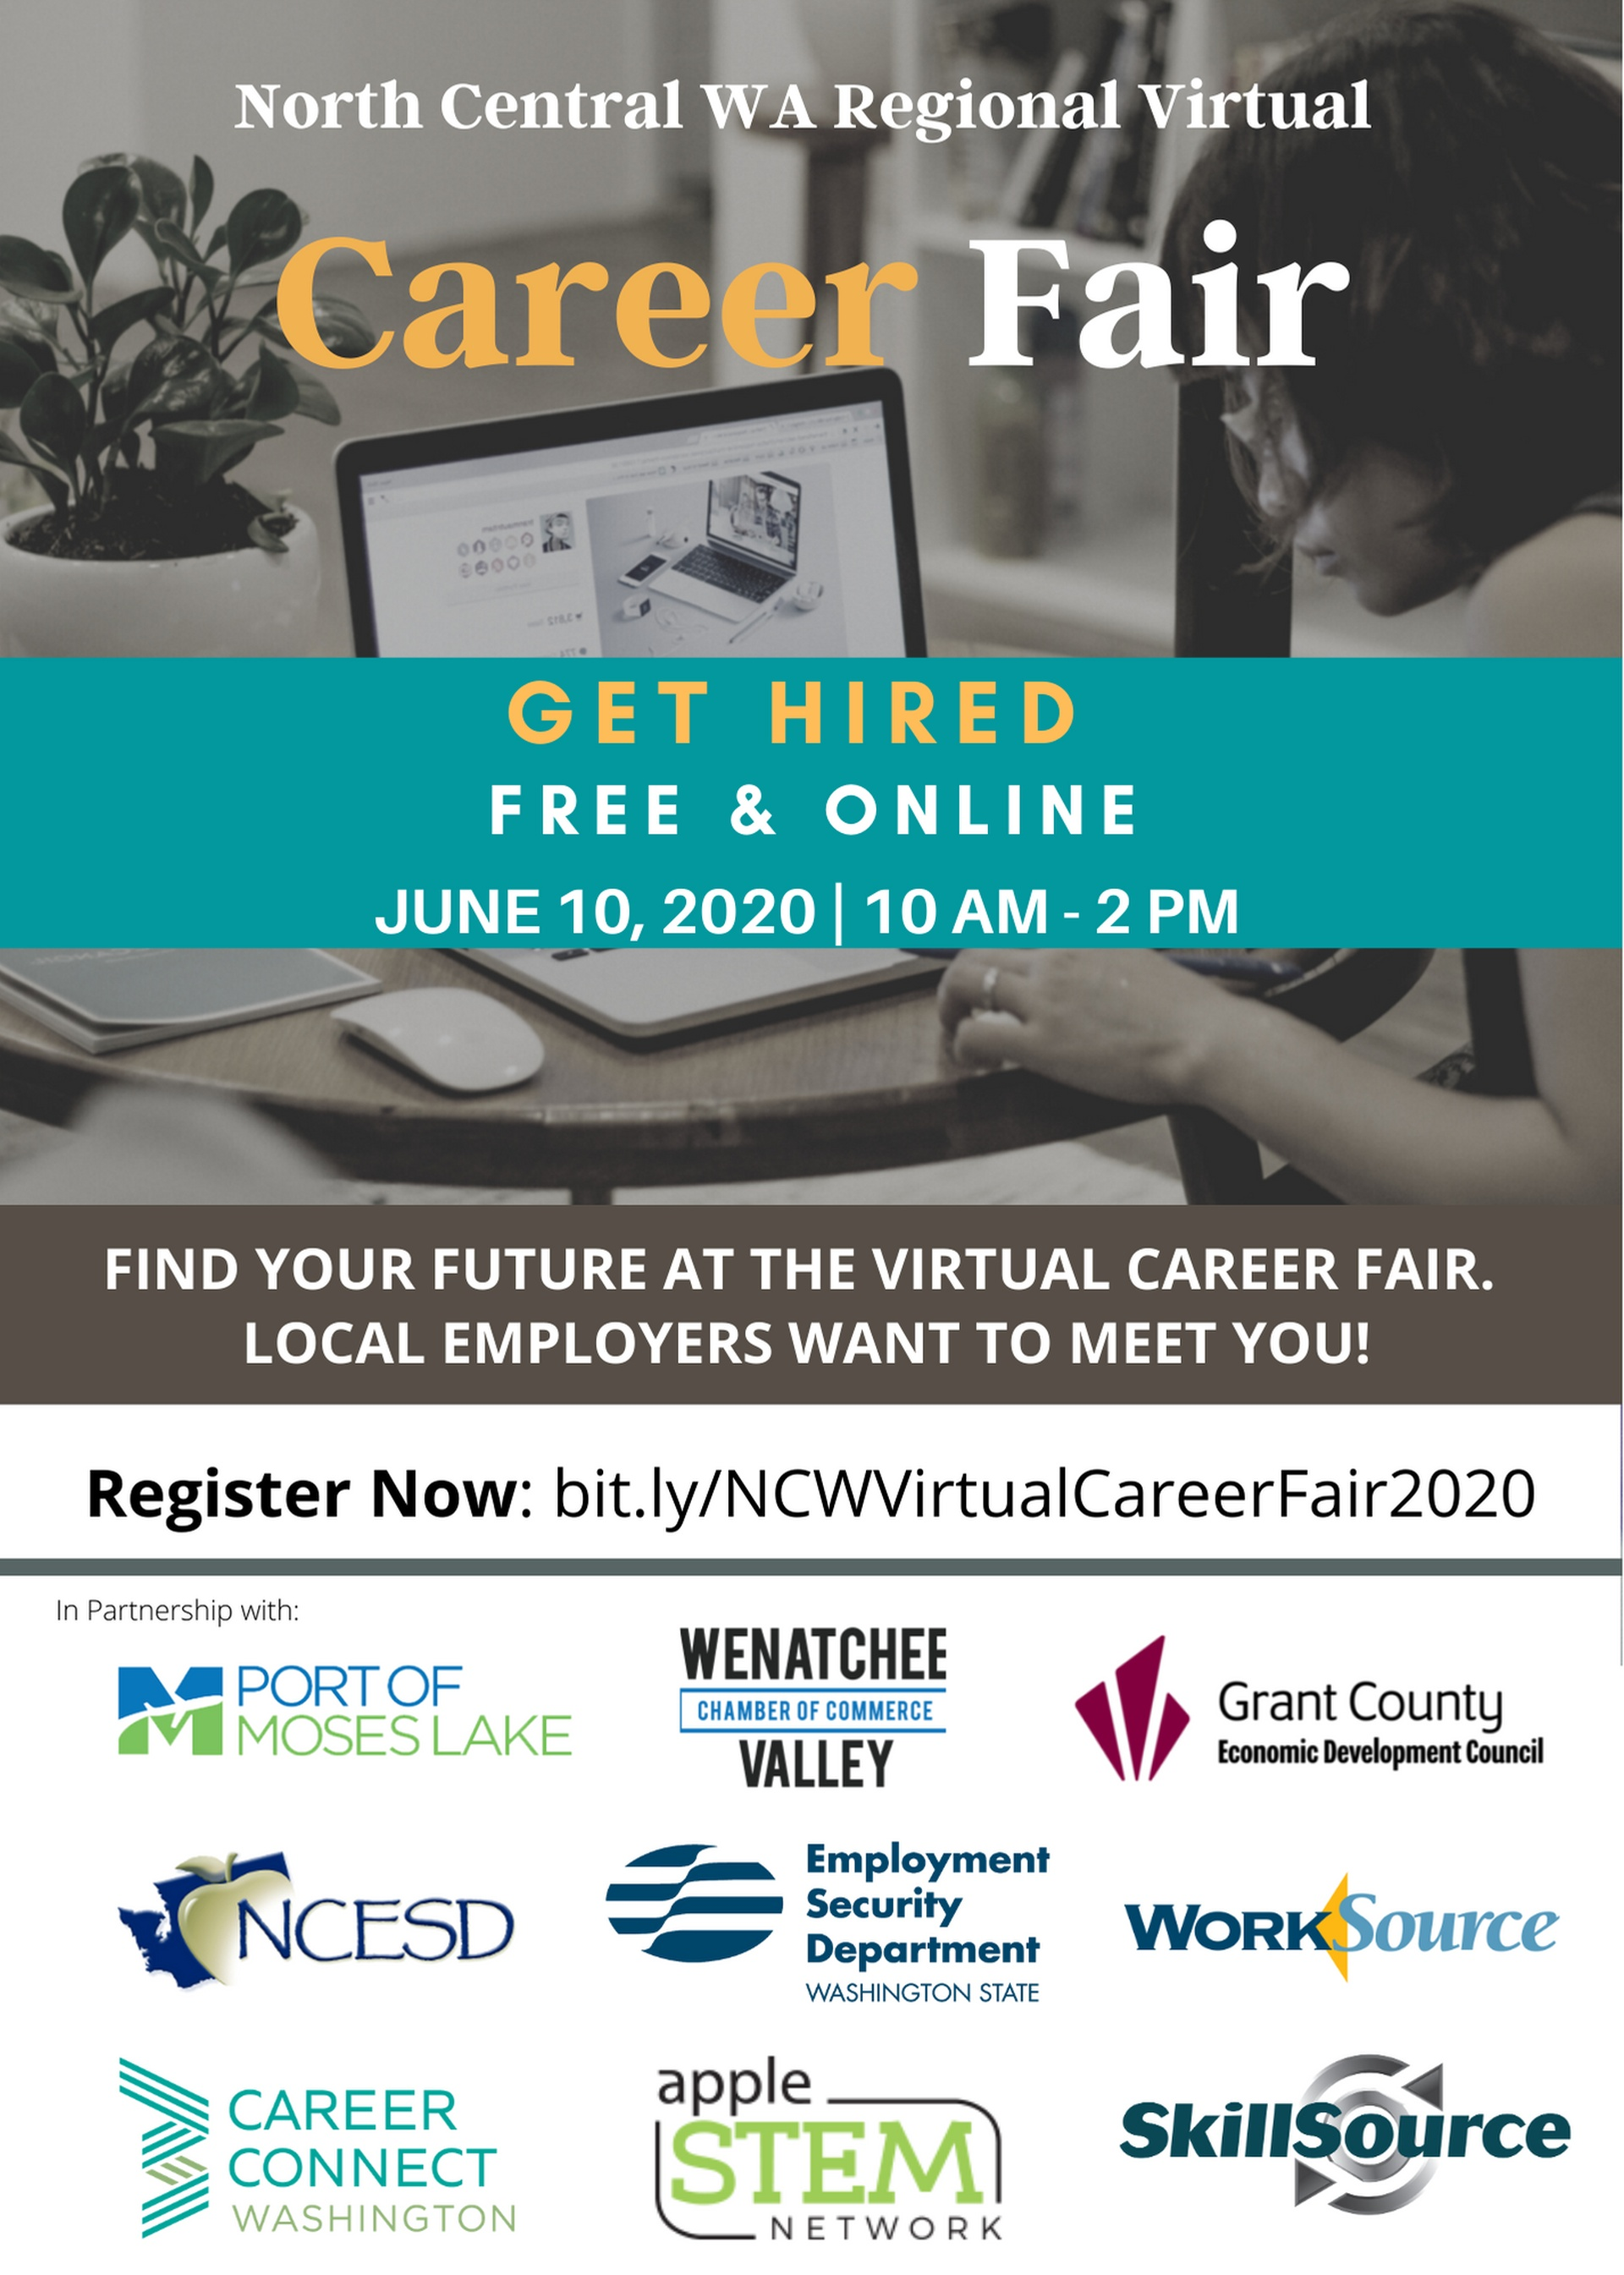 North Central WA Regional Virtual Career Fair 2020